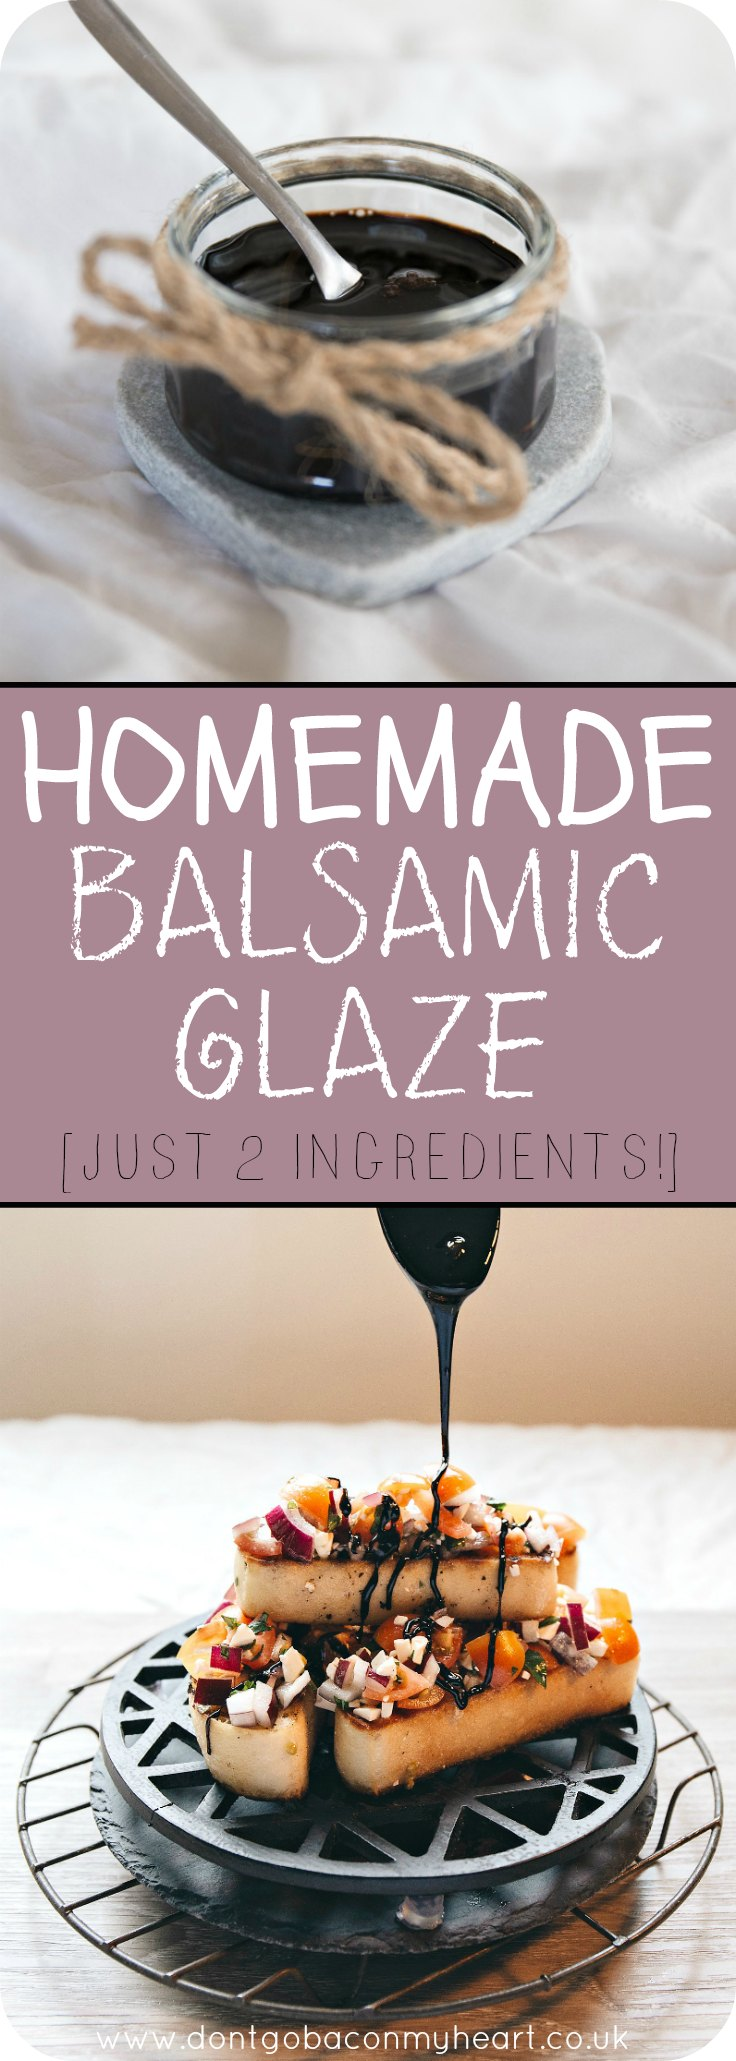 With just 2 ingredients making Homemade Balsamic Glaze couldn't be easier. Even better, it stores in the fridge. Never get store bought balsamic glaze again! #balsamic #balsamicglaze #glaze | www.dontgobaconmyheart.co.uk